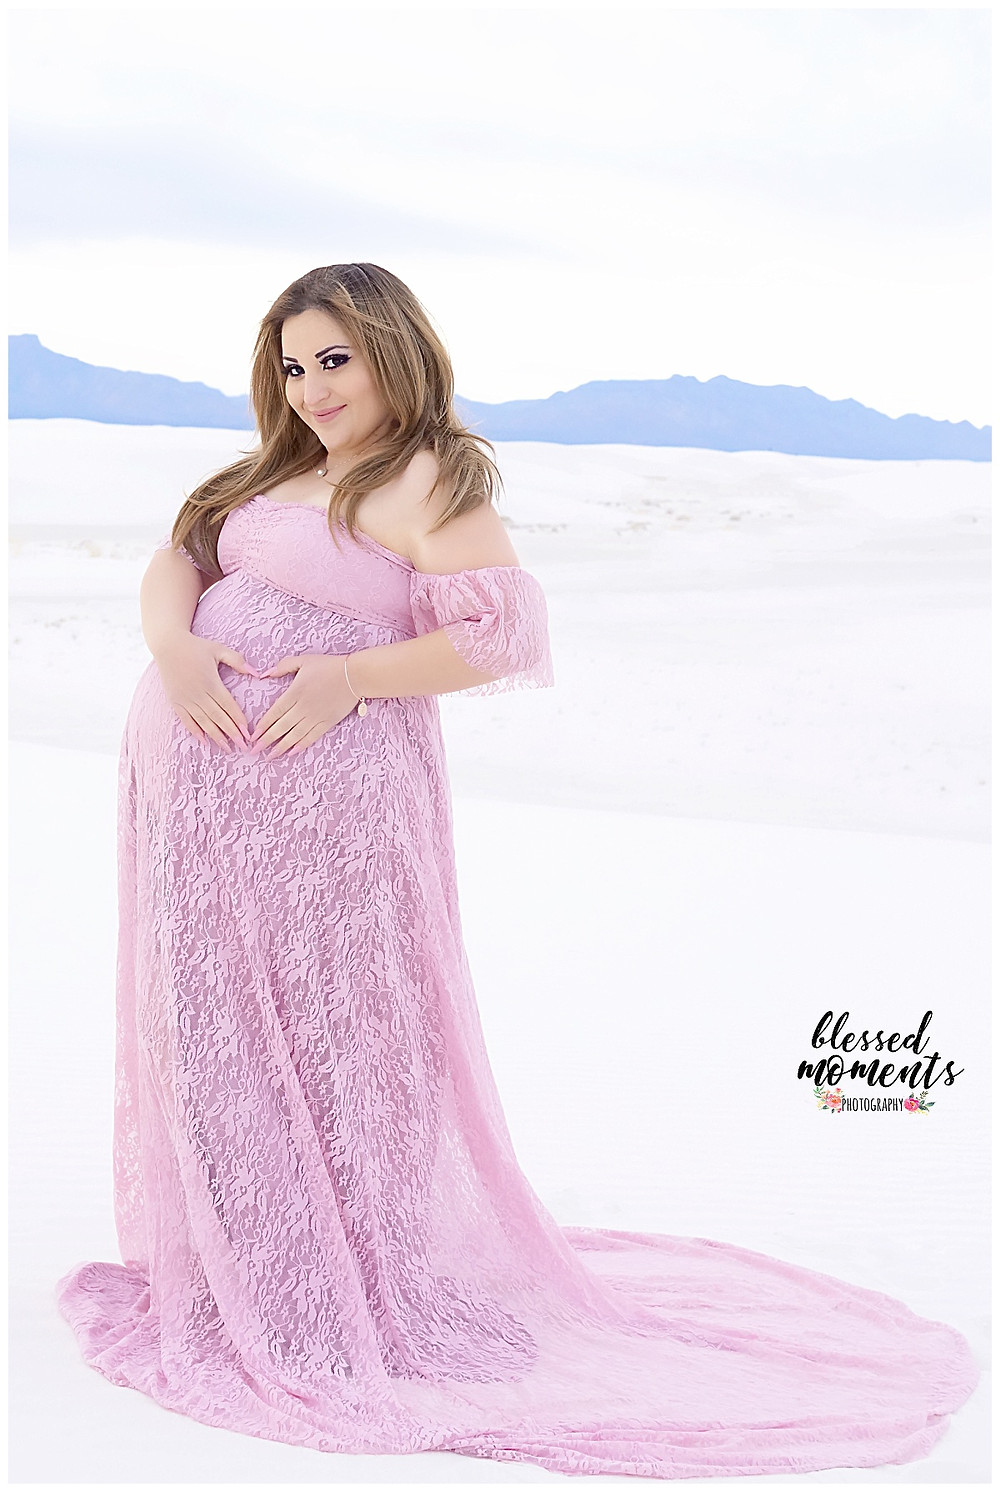 Maternity photography of El Paso woman taken at White Sands National Monument wearing a Pink Lace gown